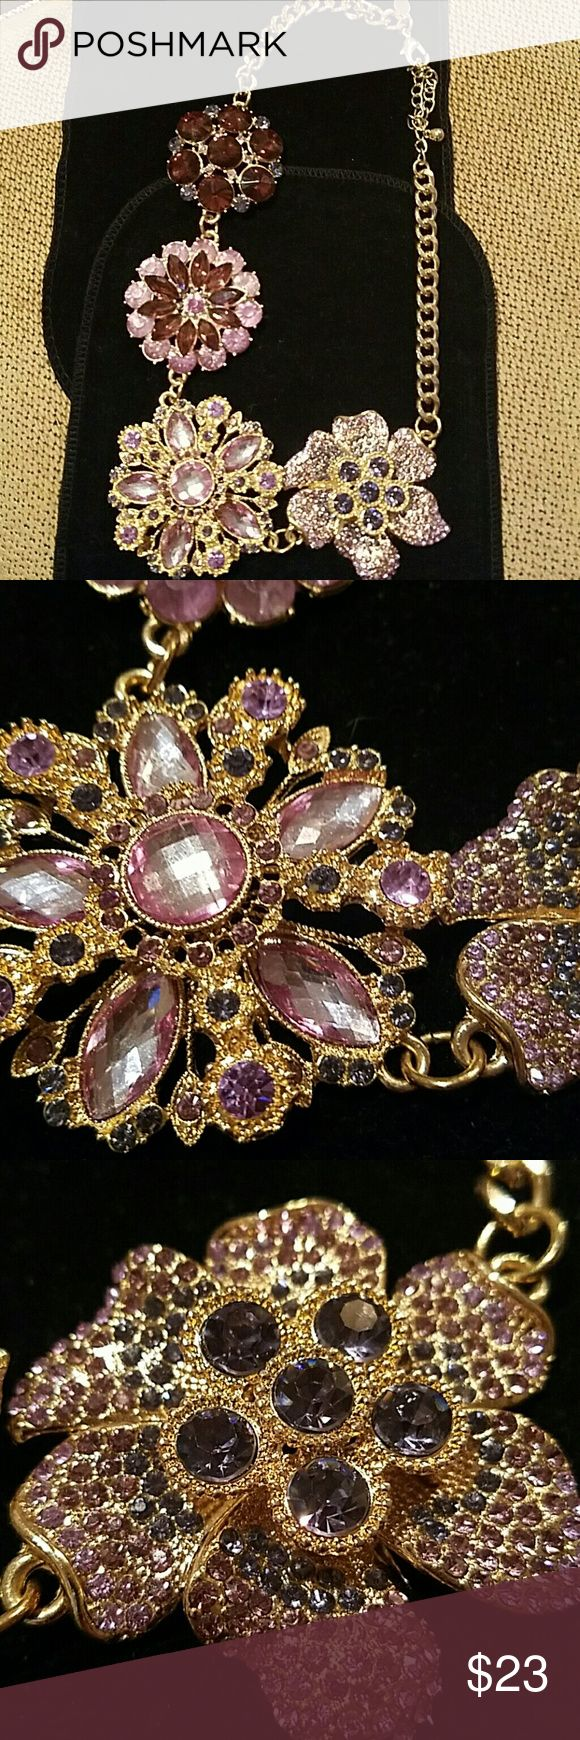 """Fabulous collar necklace Excellent condition.  22"""" beautiful hues of violets Susan graver  Jewelry Necklaces"""